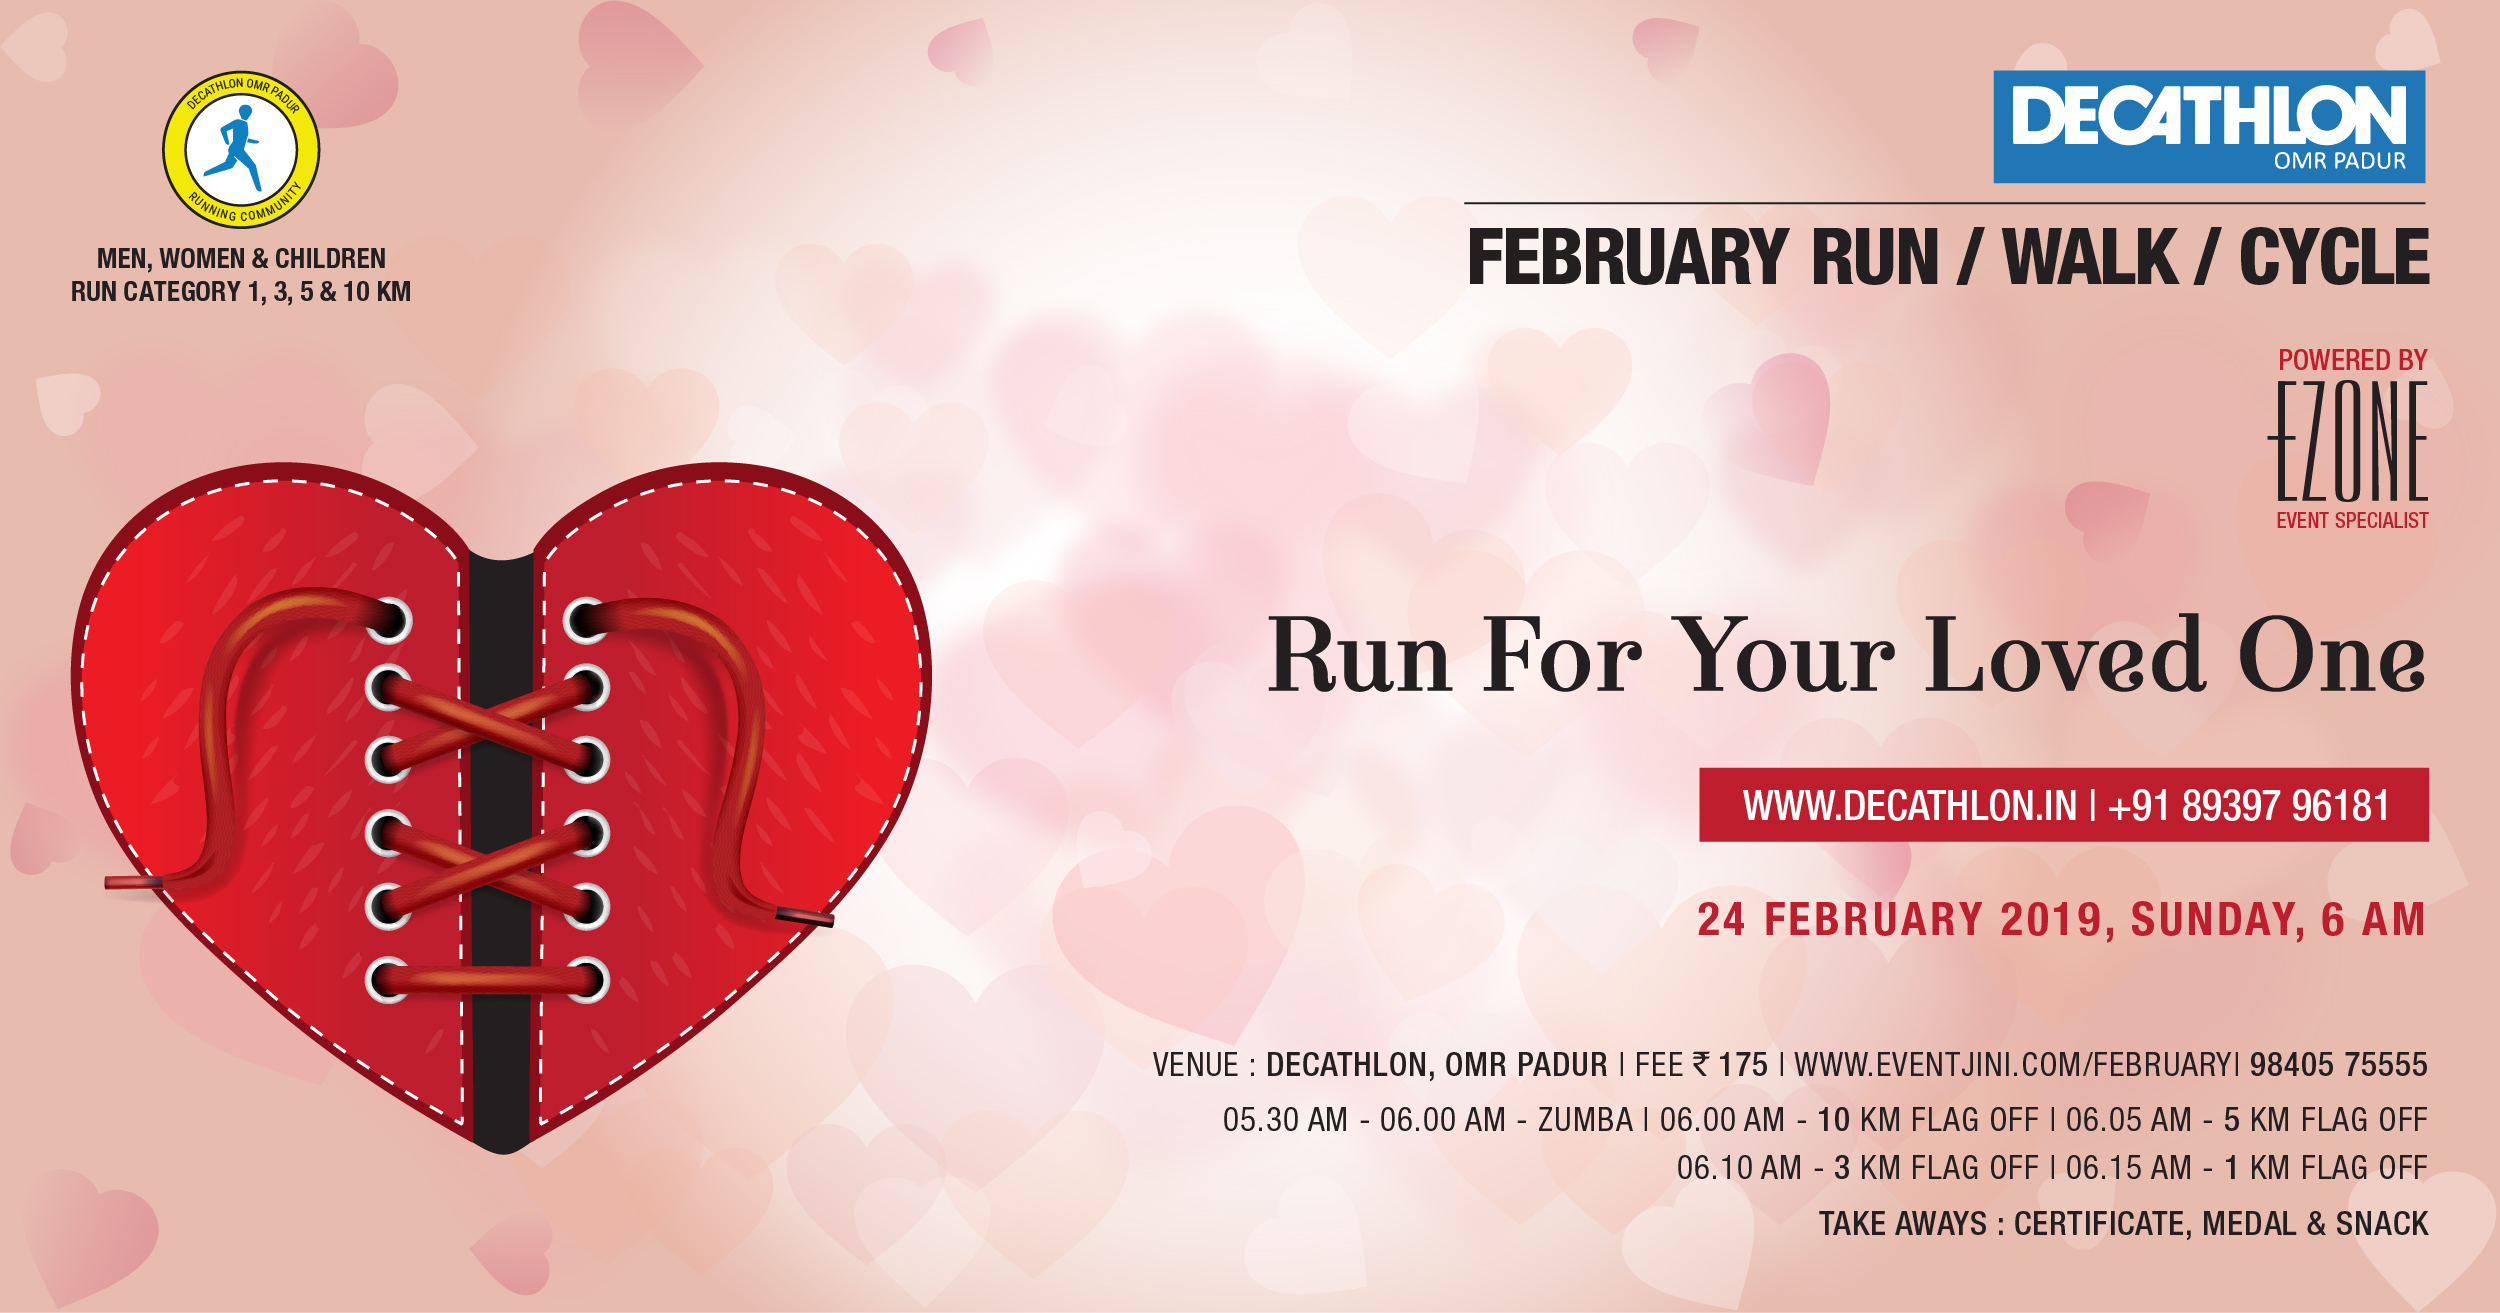 Decathlon Run Series - Run For Your Loved One, Chennai, Tamil Nadu, India